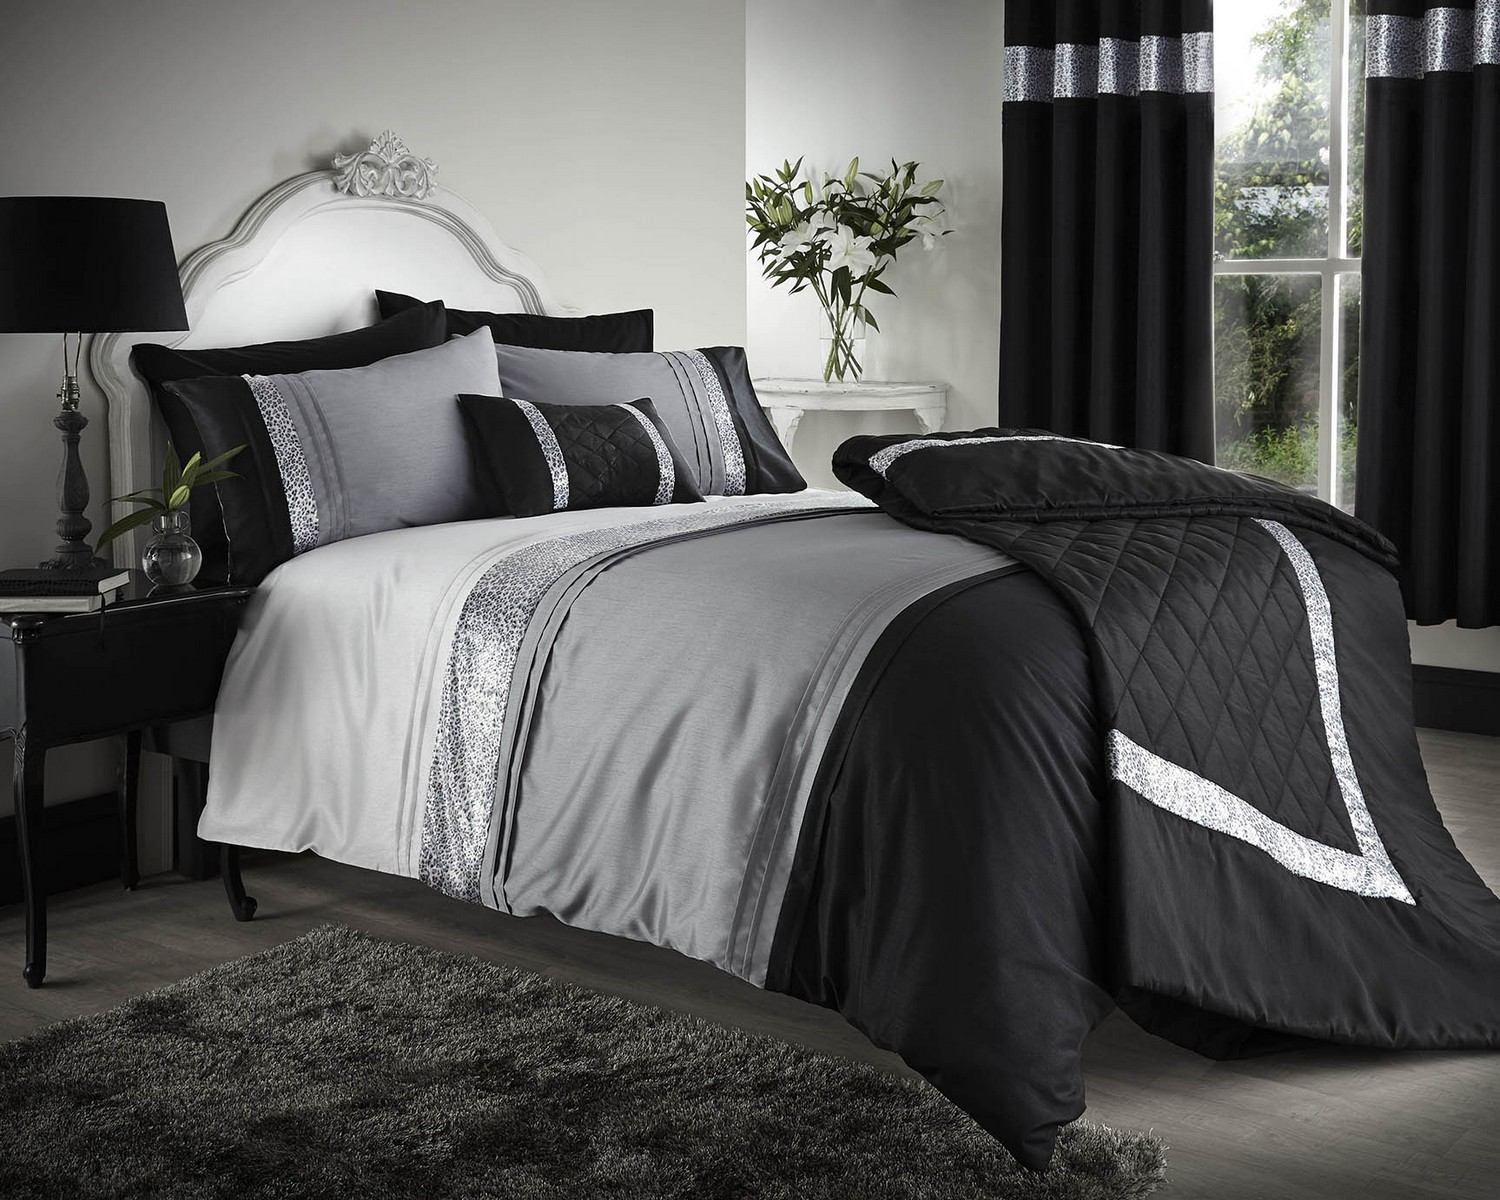 black grey silver duvet covers bedding bed set double king or super king ebay. Black Bedroom Furniture Sets. Home Design Ideas